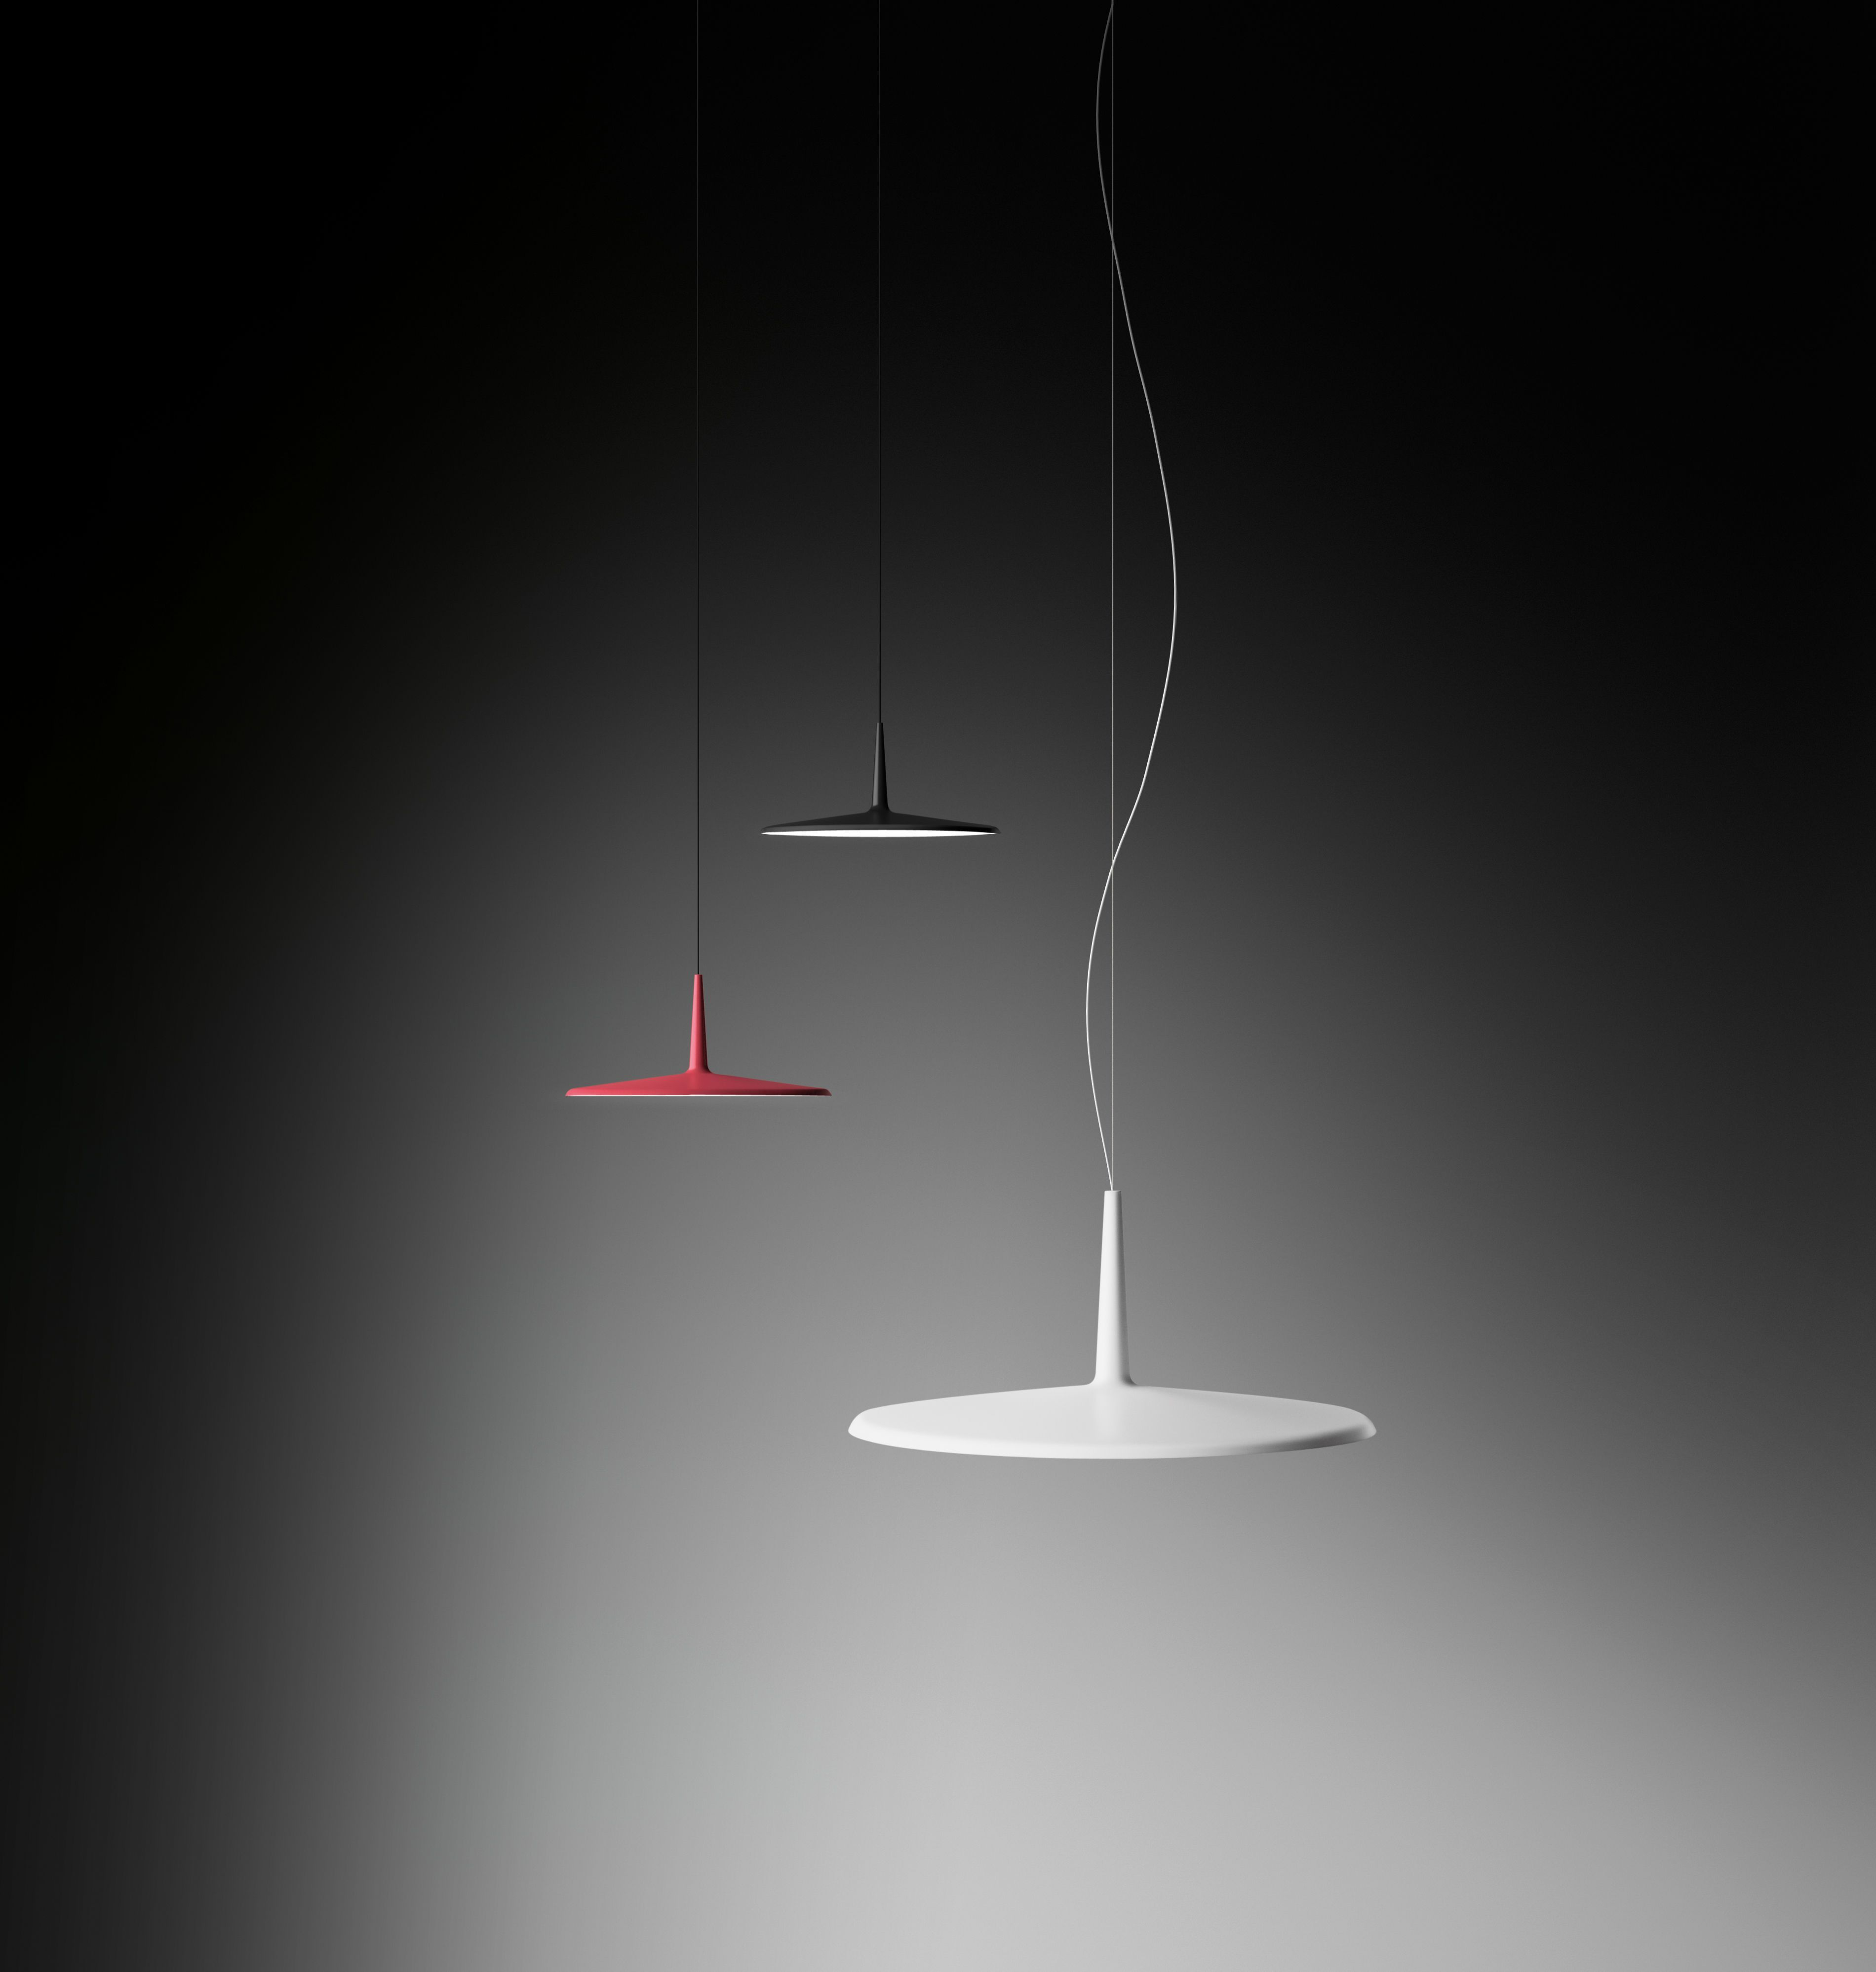 The hanging light fitting combines the elaborate simplicity of a classic design. A reinterpretation of the simple traditional lamp with a shade concept, but taking advantage of LED lighting to create a  luminary in its most simple iteration. http://www.vibia.com/en/lamps/show/id/02714/hanging_lamps_skan_0271_design_by_lievore_altherr_molina.html?utm_source=organic&utm_medium=twitter&utm_campaign=wireflow